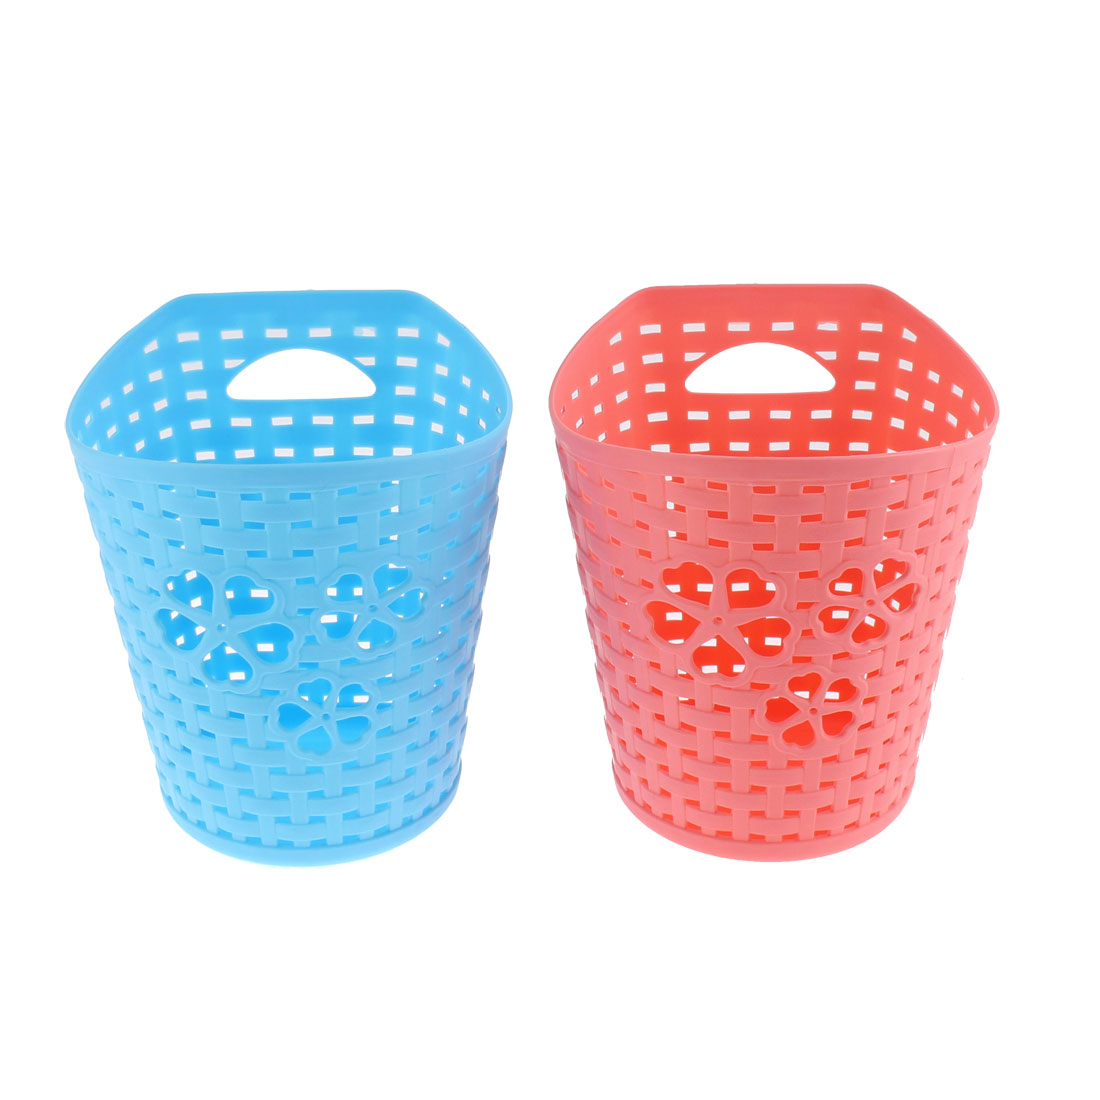 Plastic Hollow Out Heart Storage Basket Holder Coral Pink Blue 2 Pcs